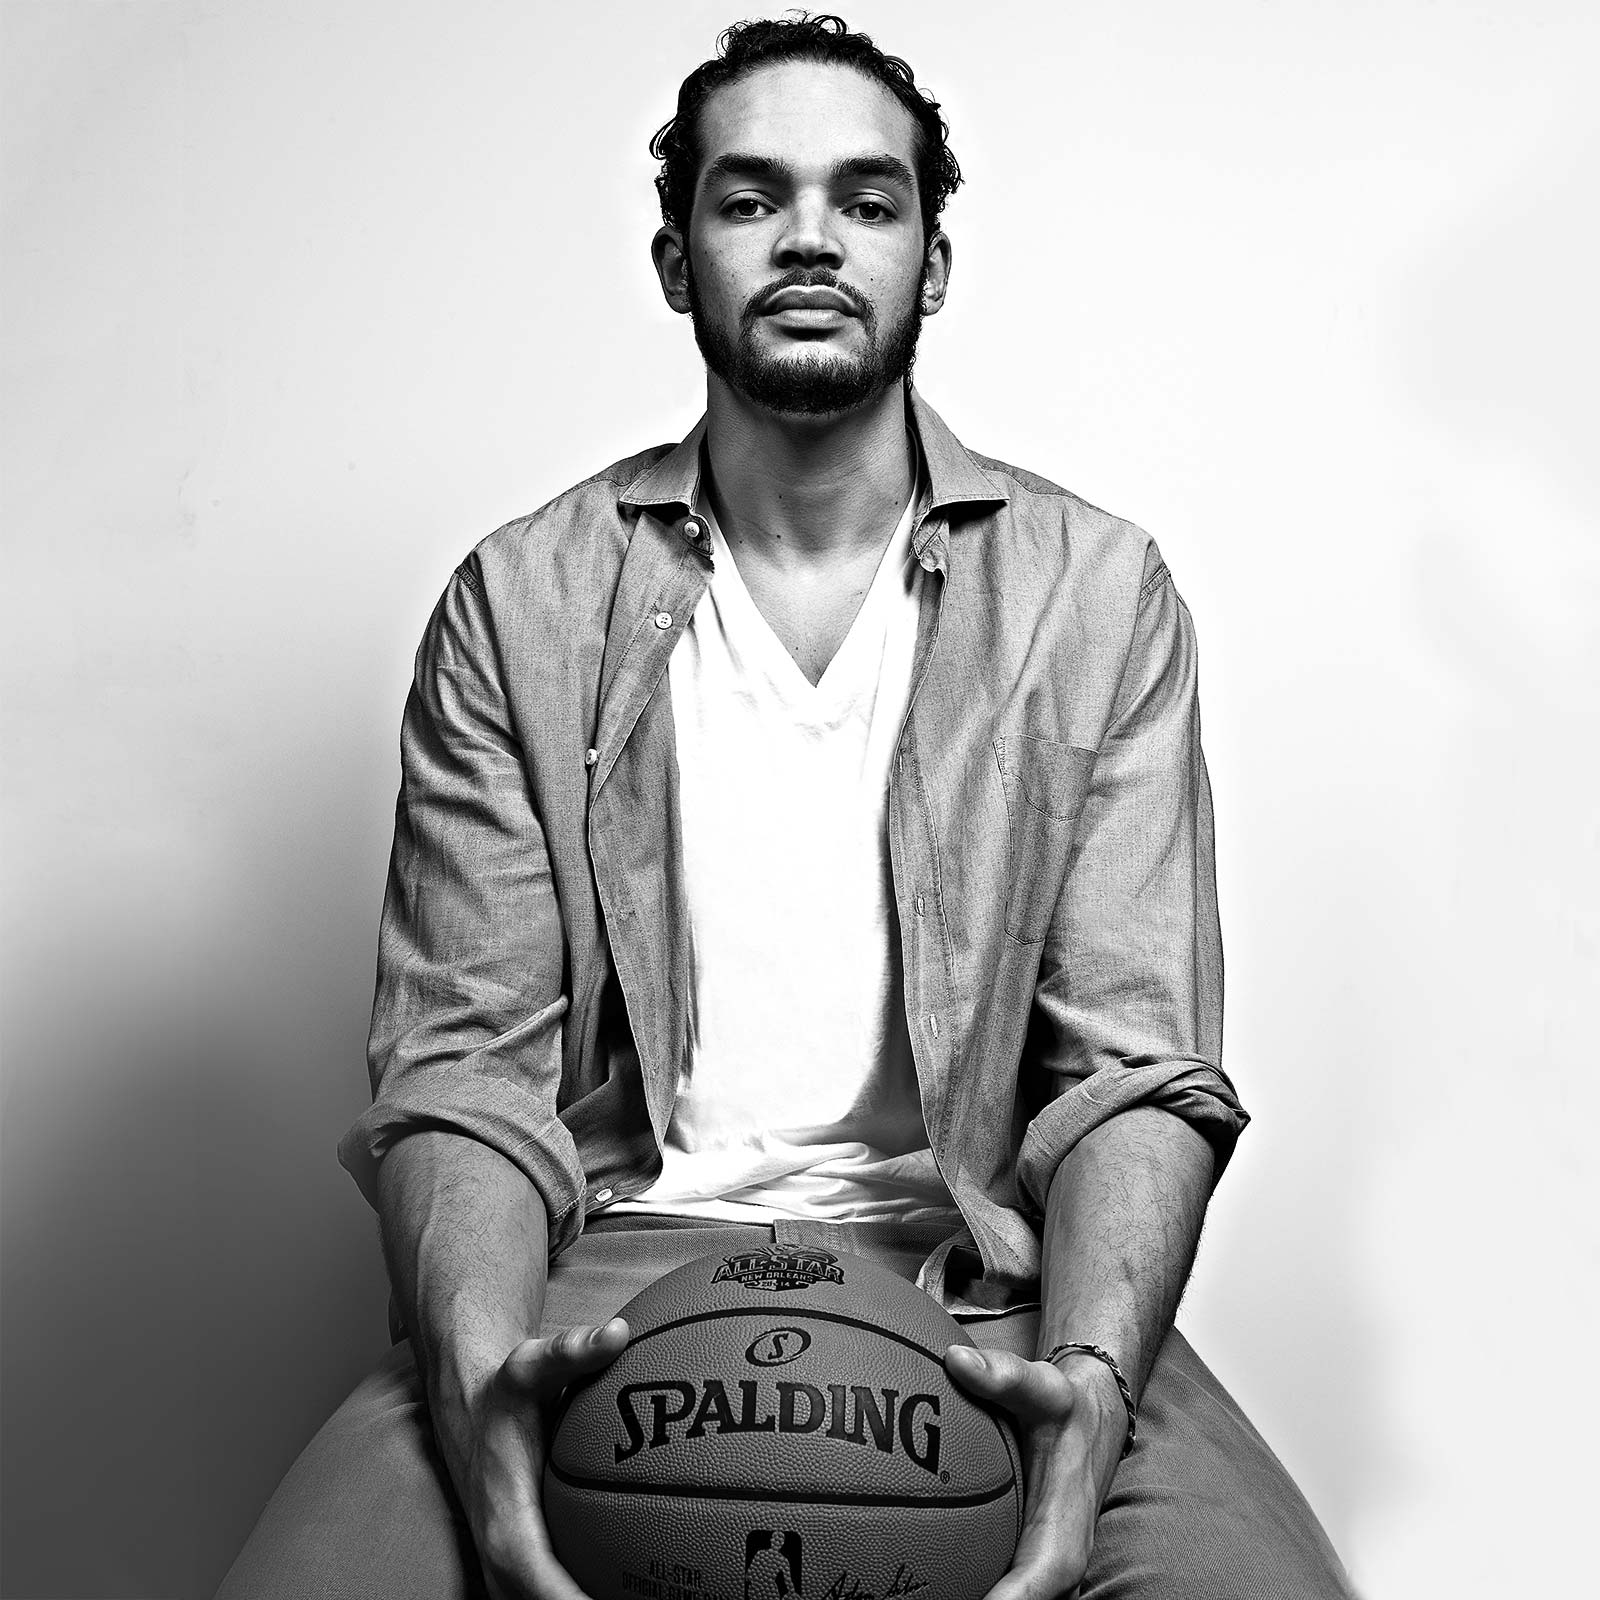 Champions of Community: Joakim Noah Giving Back to Chicago